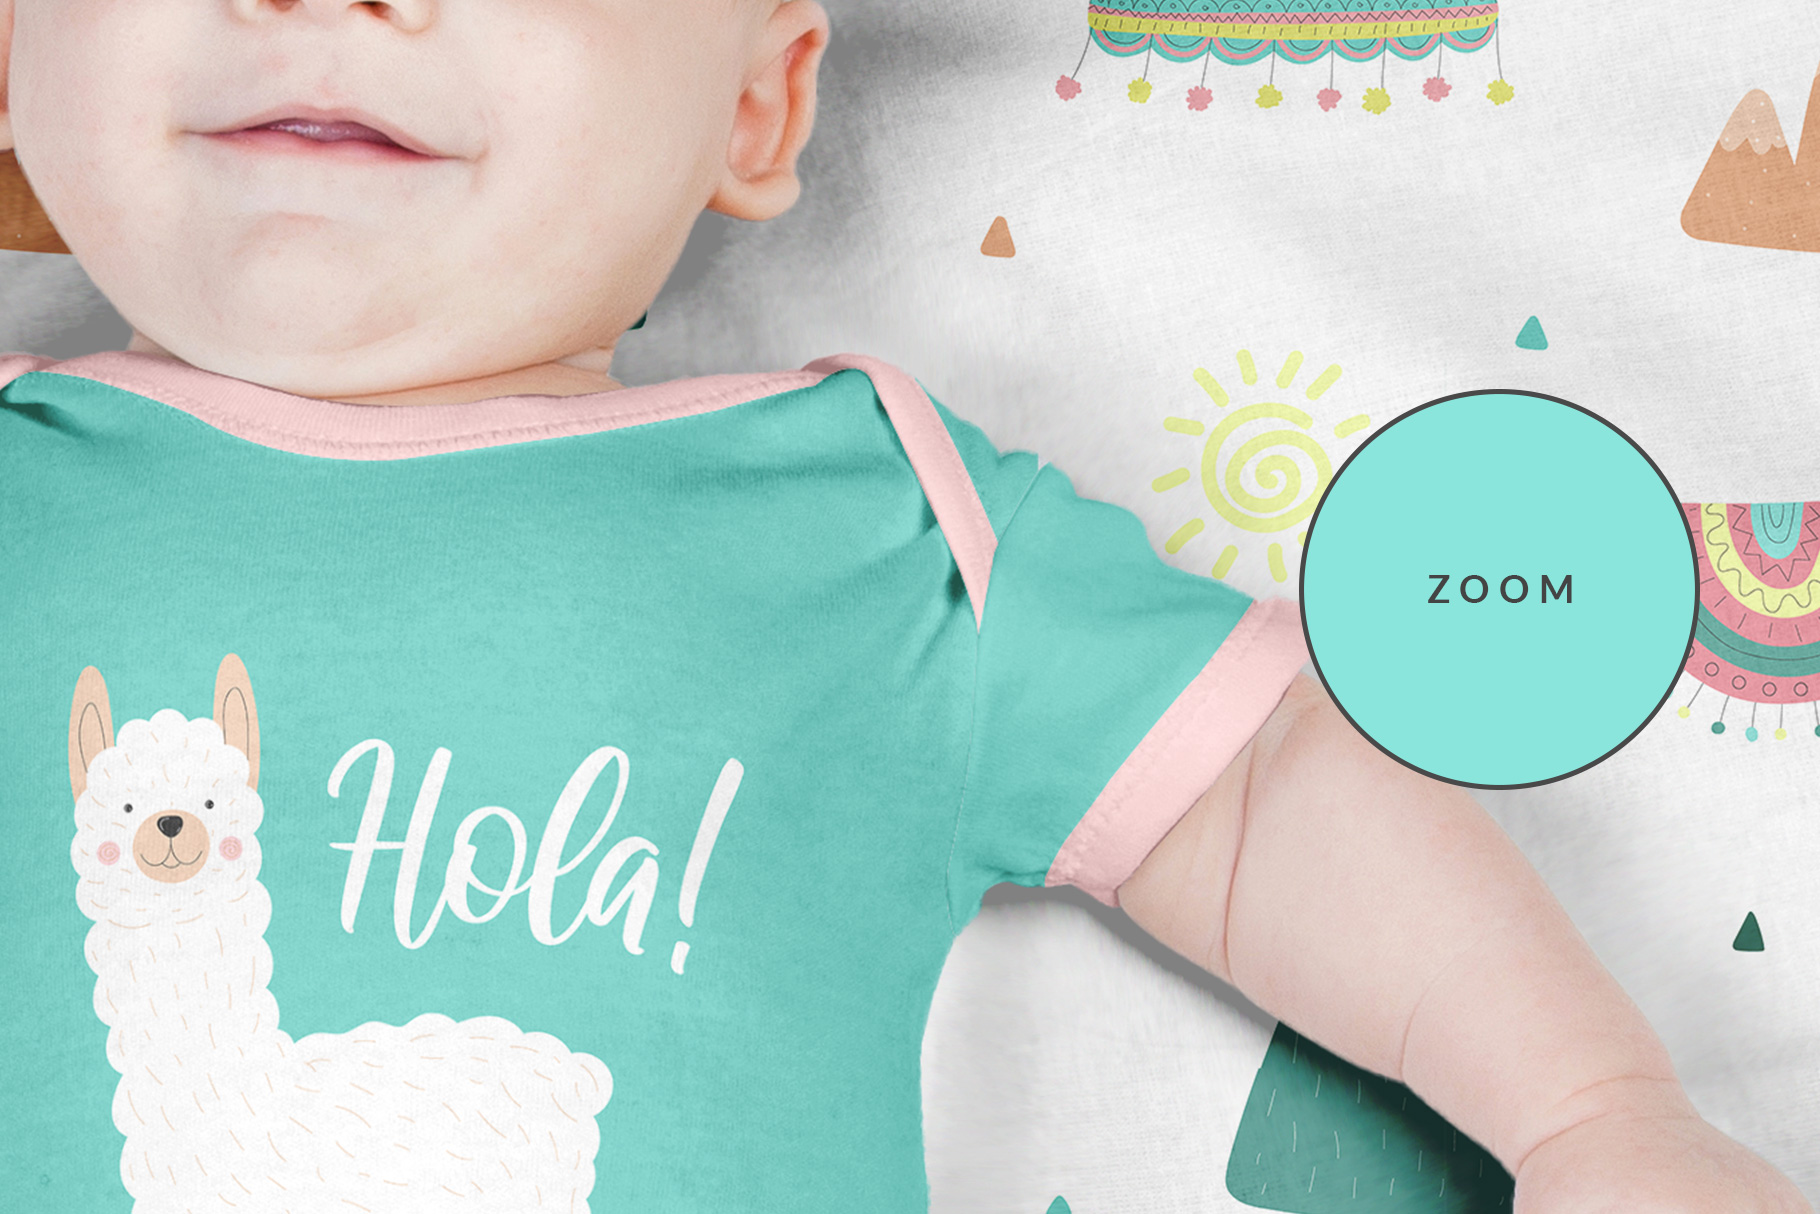 zoomed in image of the top view newborn baby outfit mockup